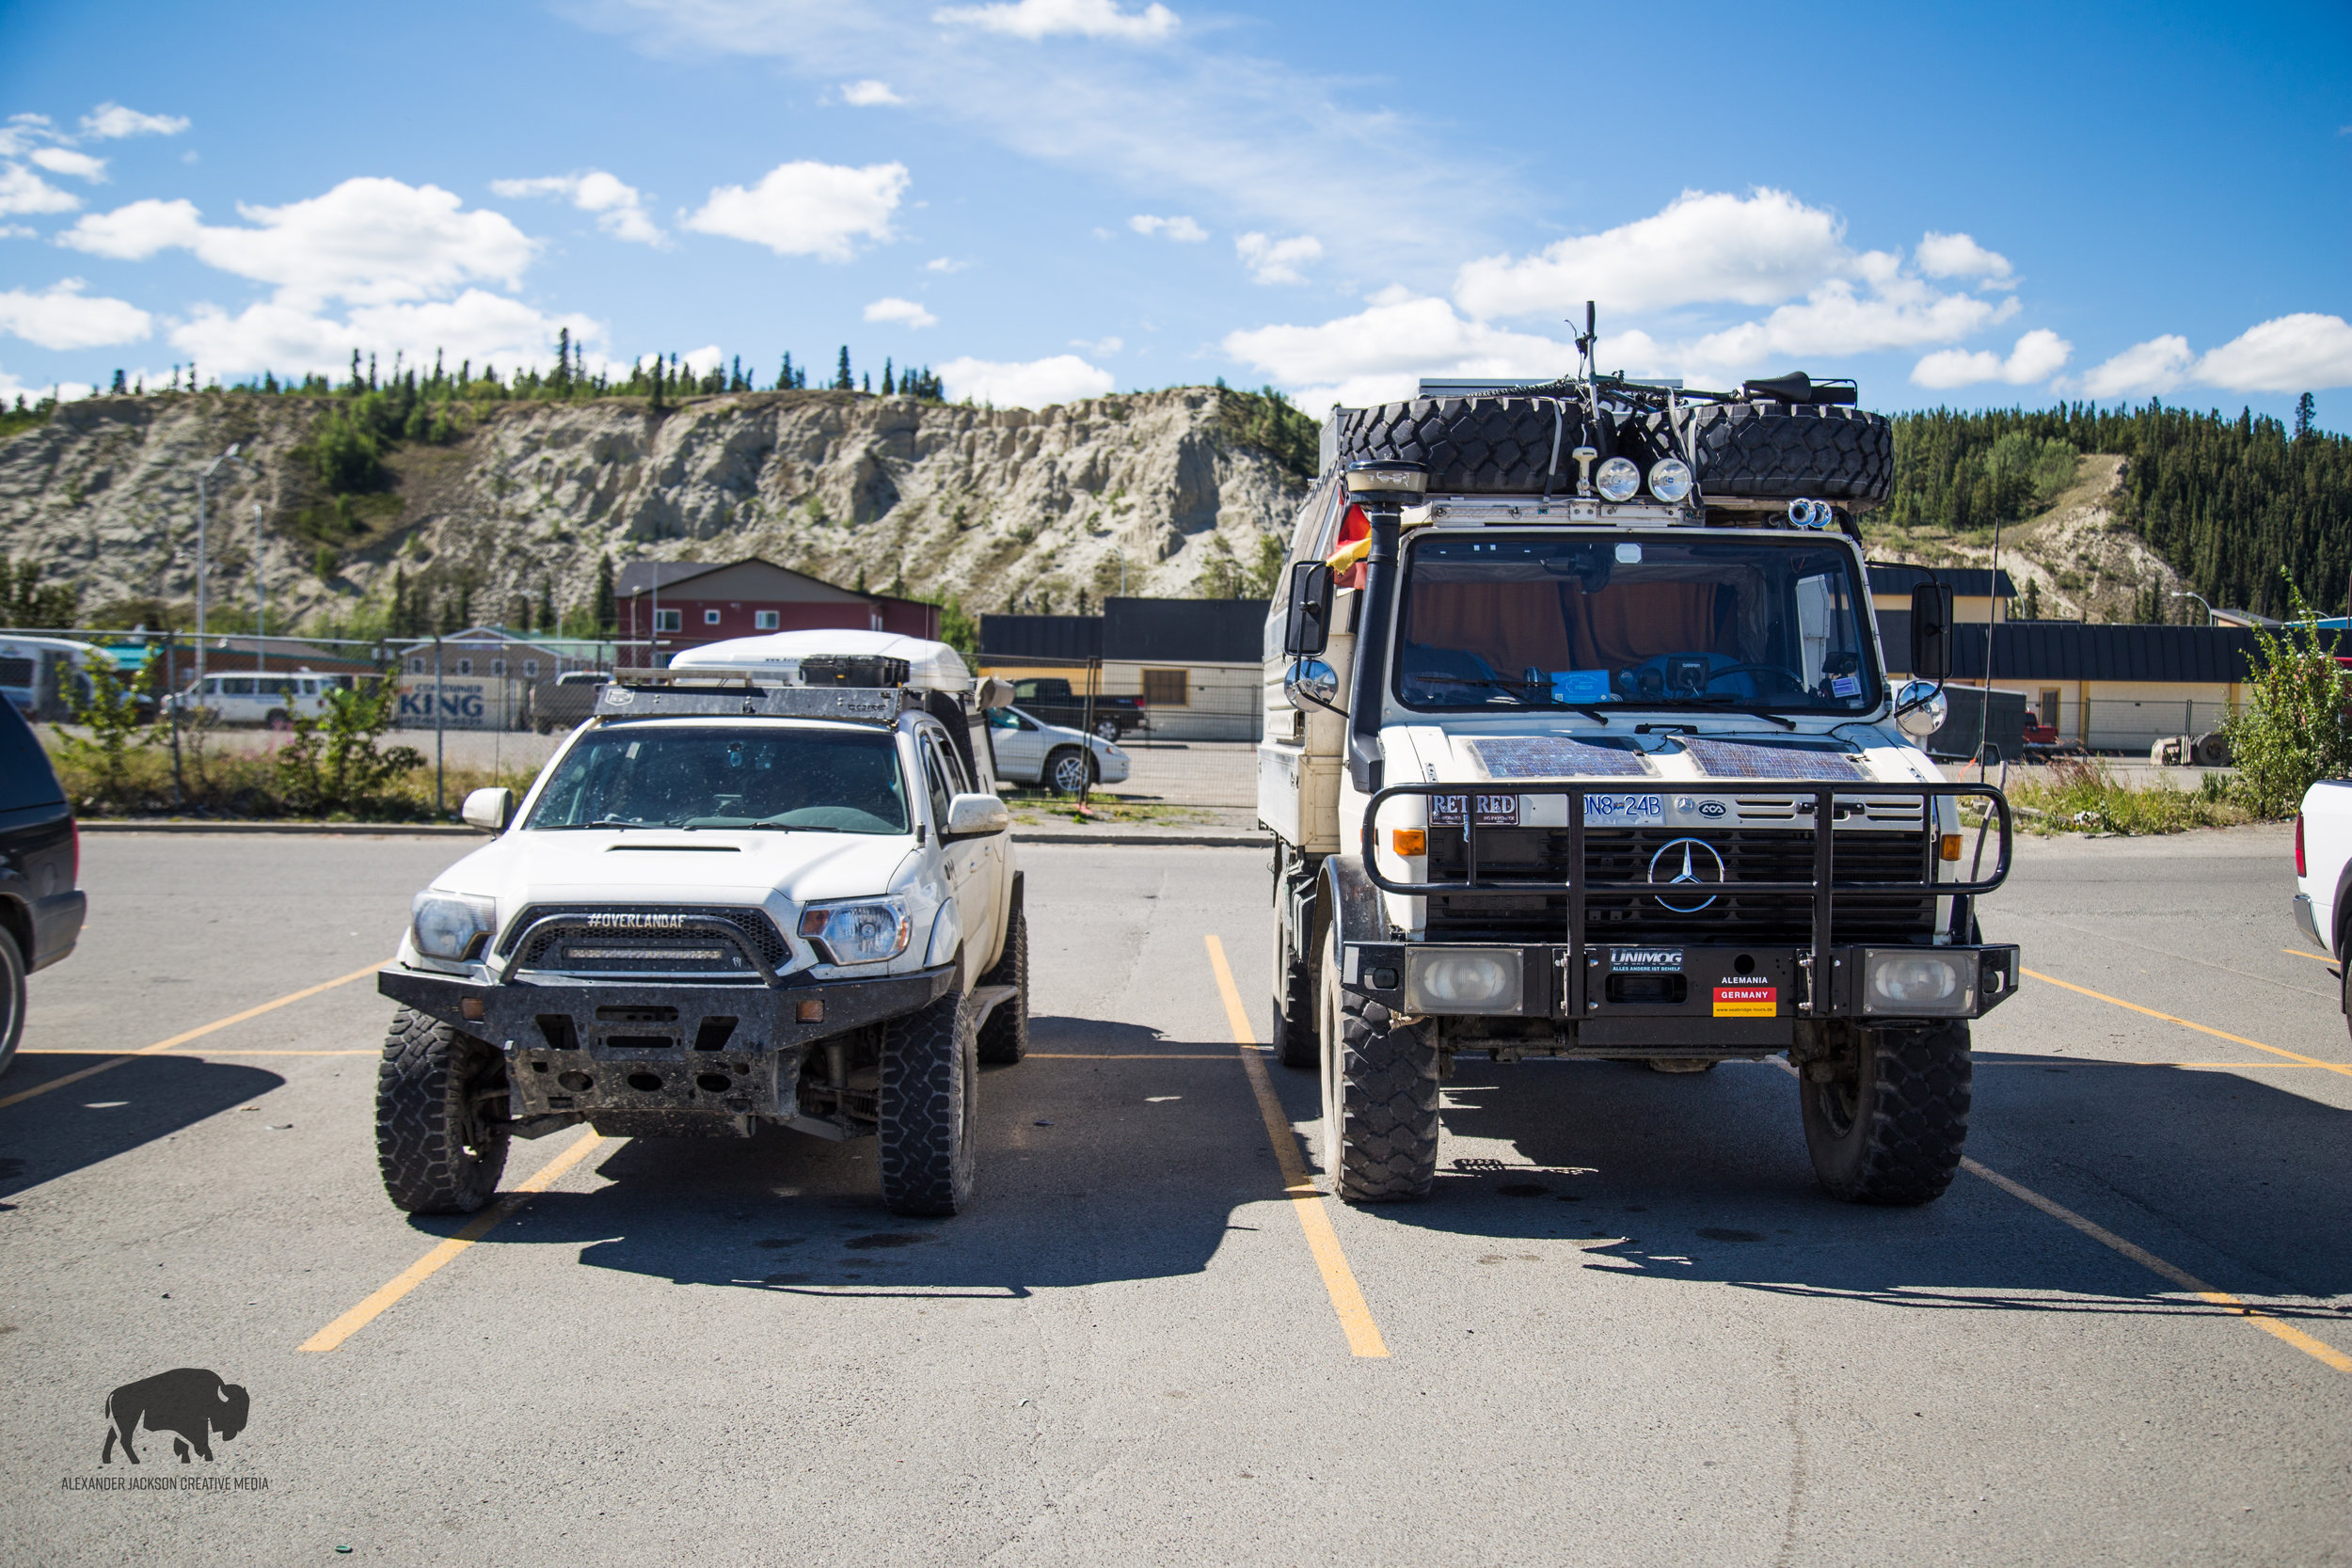 #rigenvy the guy that owns this unimog is from South Africa and lives part time in the Yukon and part time down South. He hunts and fishes...that's all he told me.